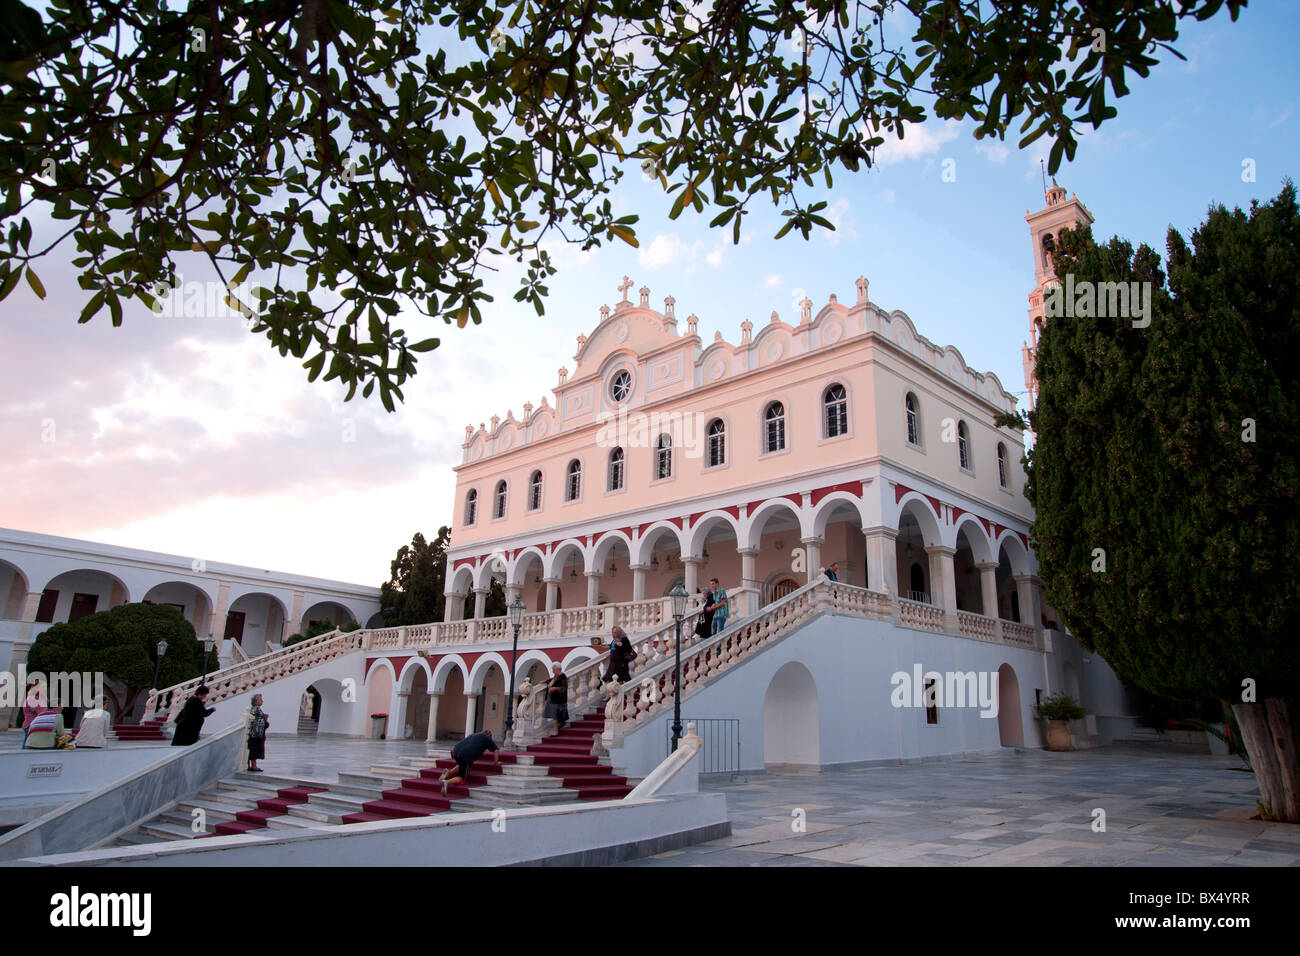 View of  Panagia Evangelistria Church, the most revered religious shrine in Greece. - Stock Image